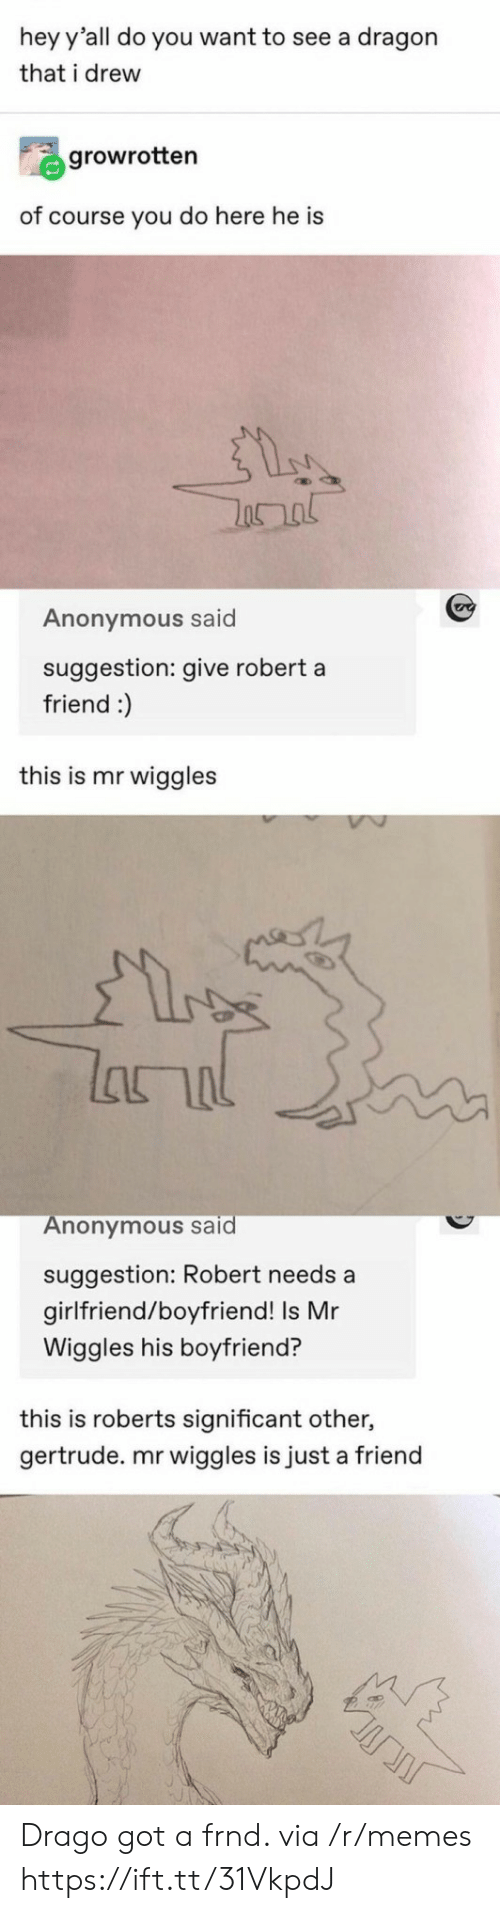 Memes, Anonymous, and Girlfriend: hey y'all do you want to see a dragon  that i drew  growrotten  of course you do here he is  Anonymous said  suggestion: give robert a  friend :)  this is mr wiggles  lanal  Anonymous said  suggestion: Robert needs a  girlfriend/boyfriend! Is Mr  Wiggles his boyfriend?  this is roberts significant other,  gertrude. mr wiggles is just a friend Drago got a frnd. via /r/memes https://ift.tt/31VkpdJ